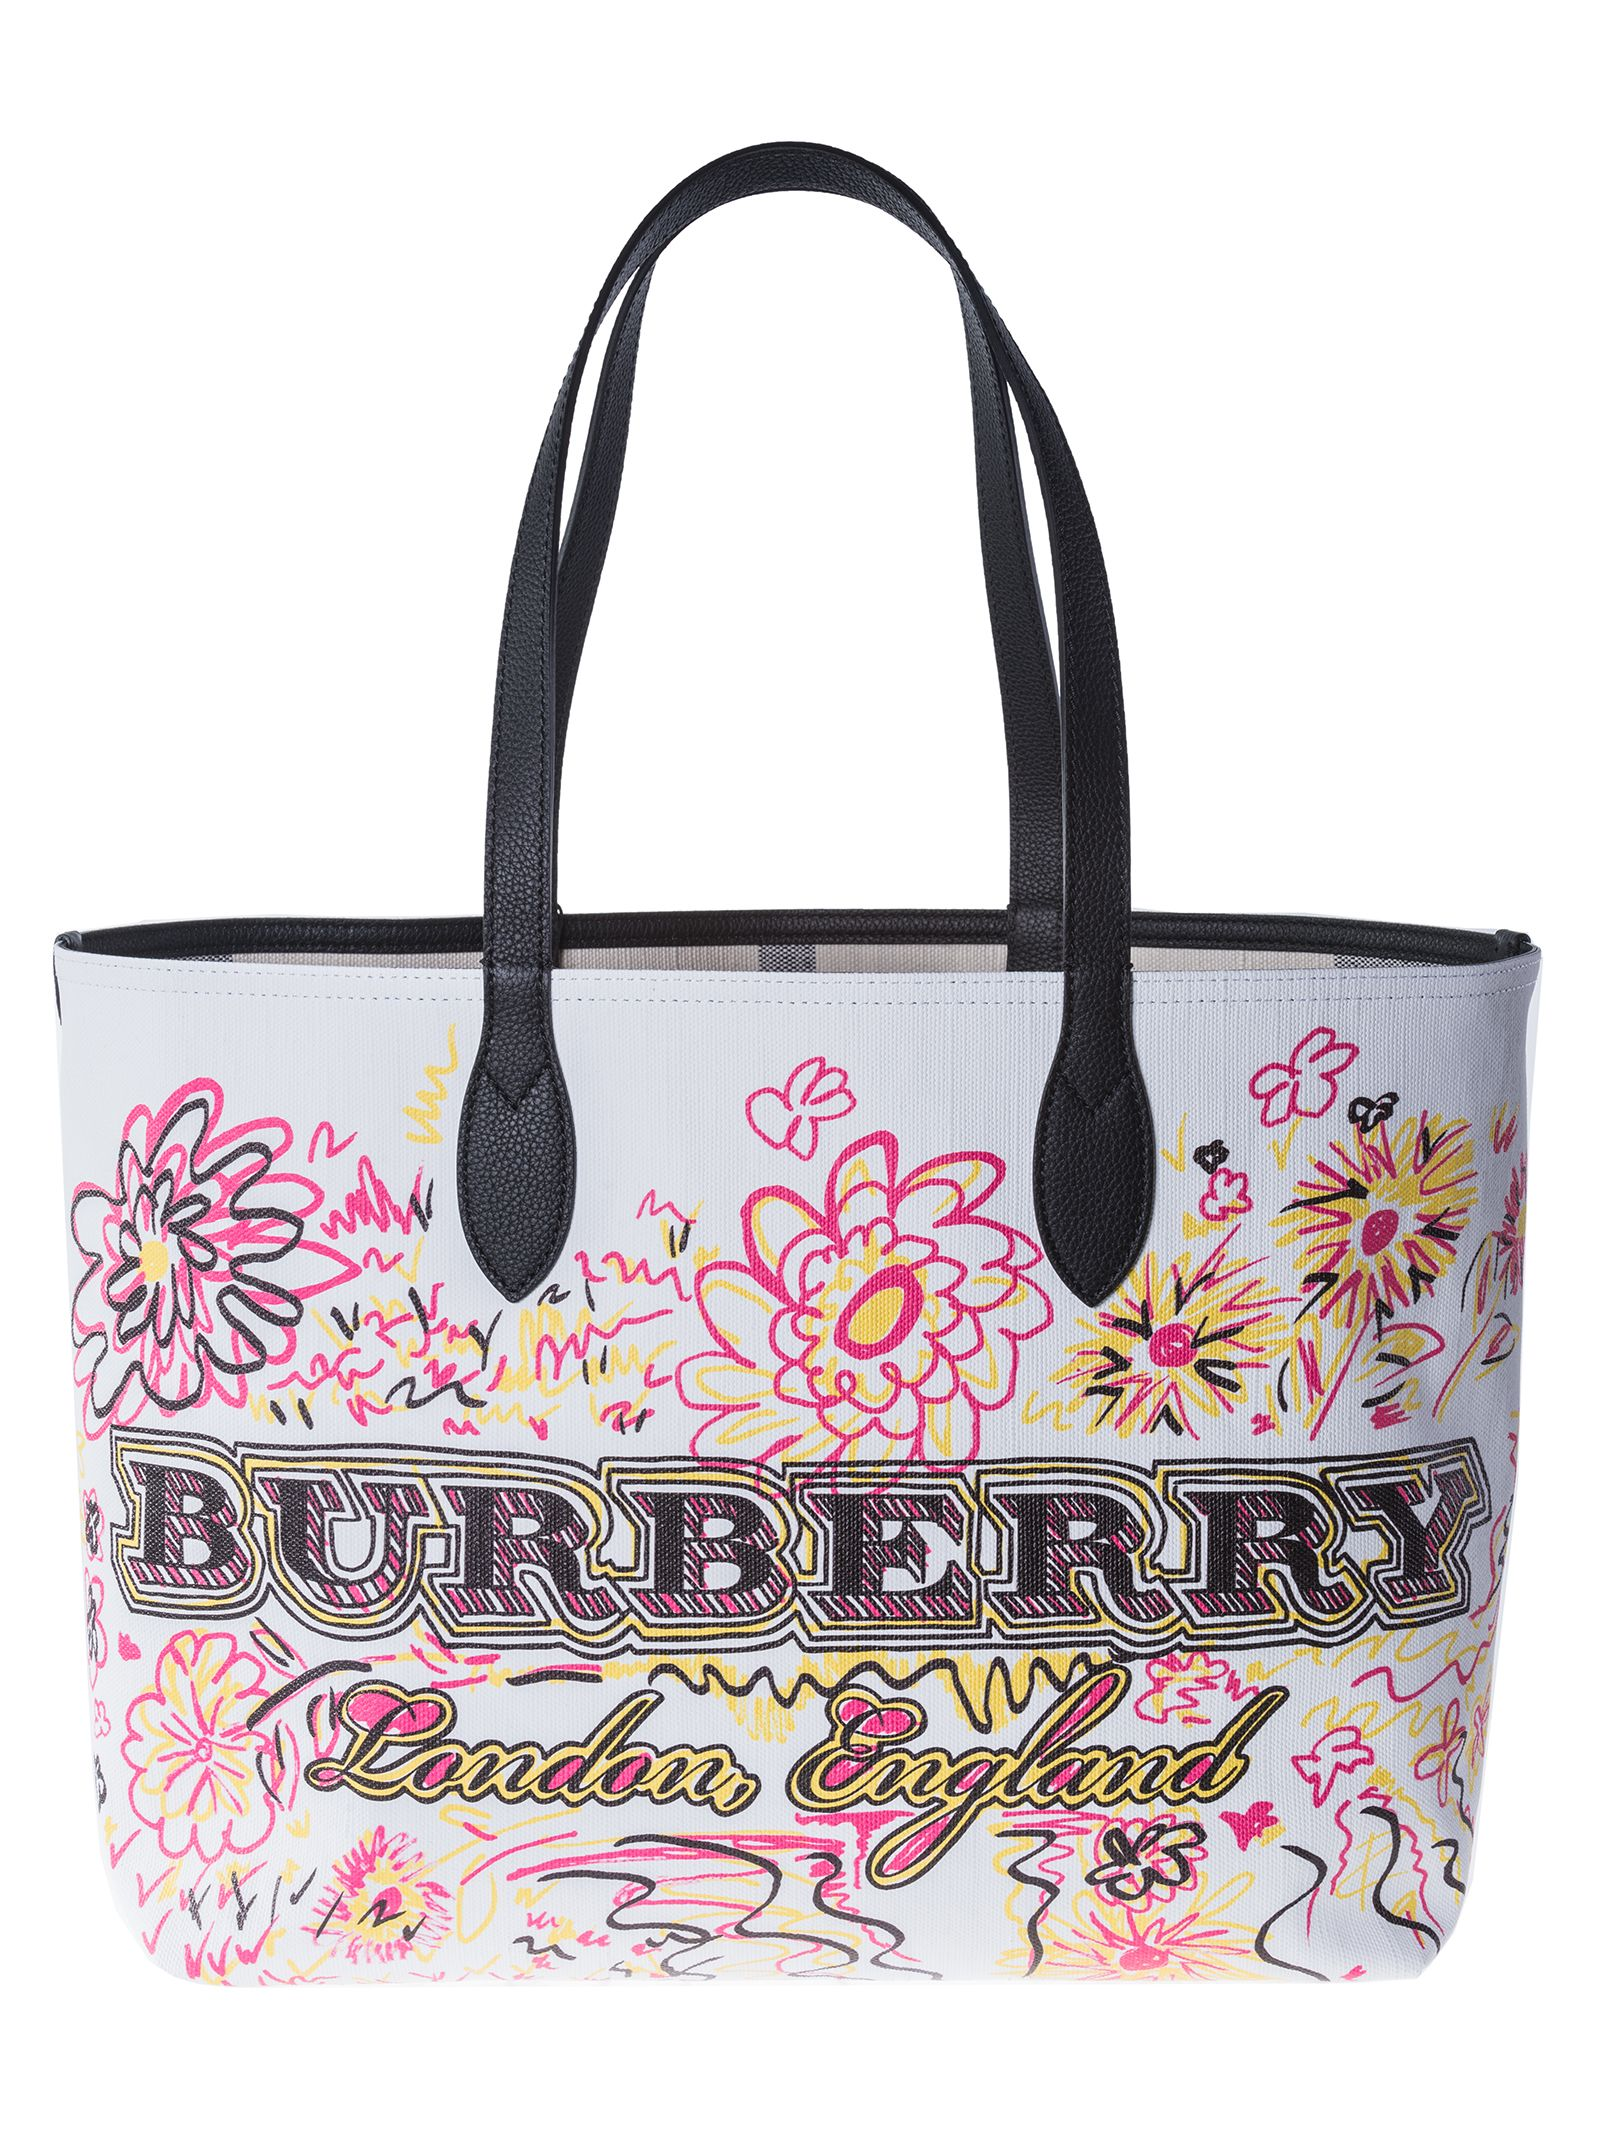 Burberry Large Doodle Tote